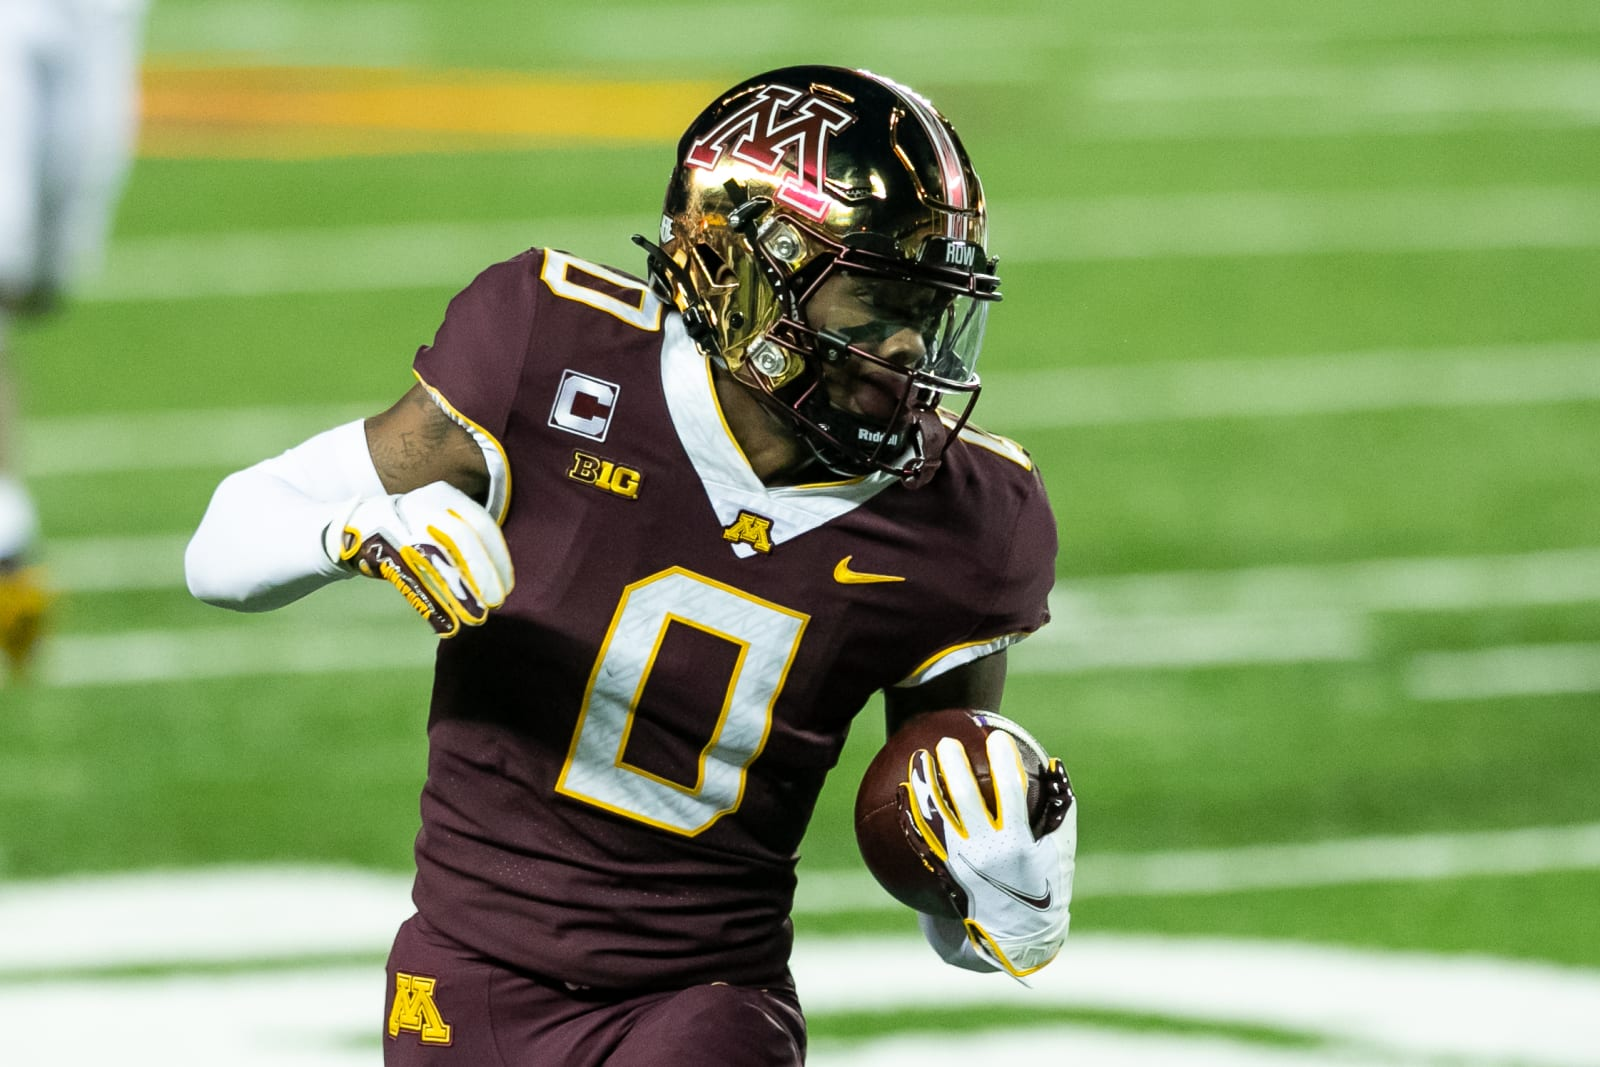 2021 NFL Draft: Three-round 2021 NFL mock draft with top ...